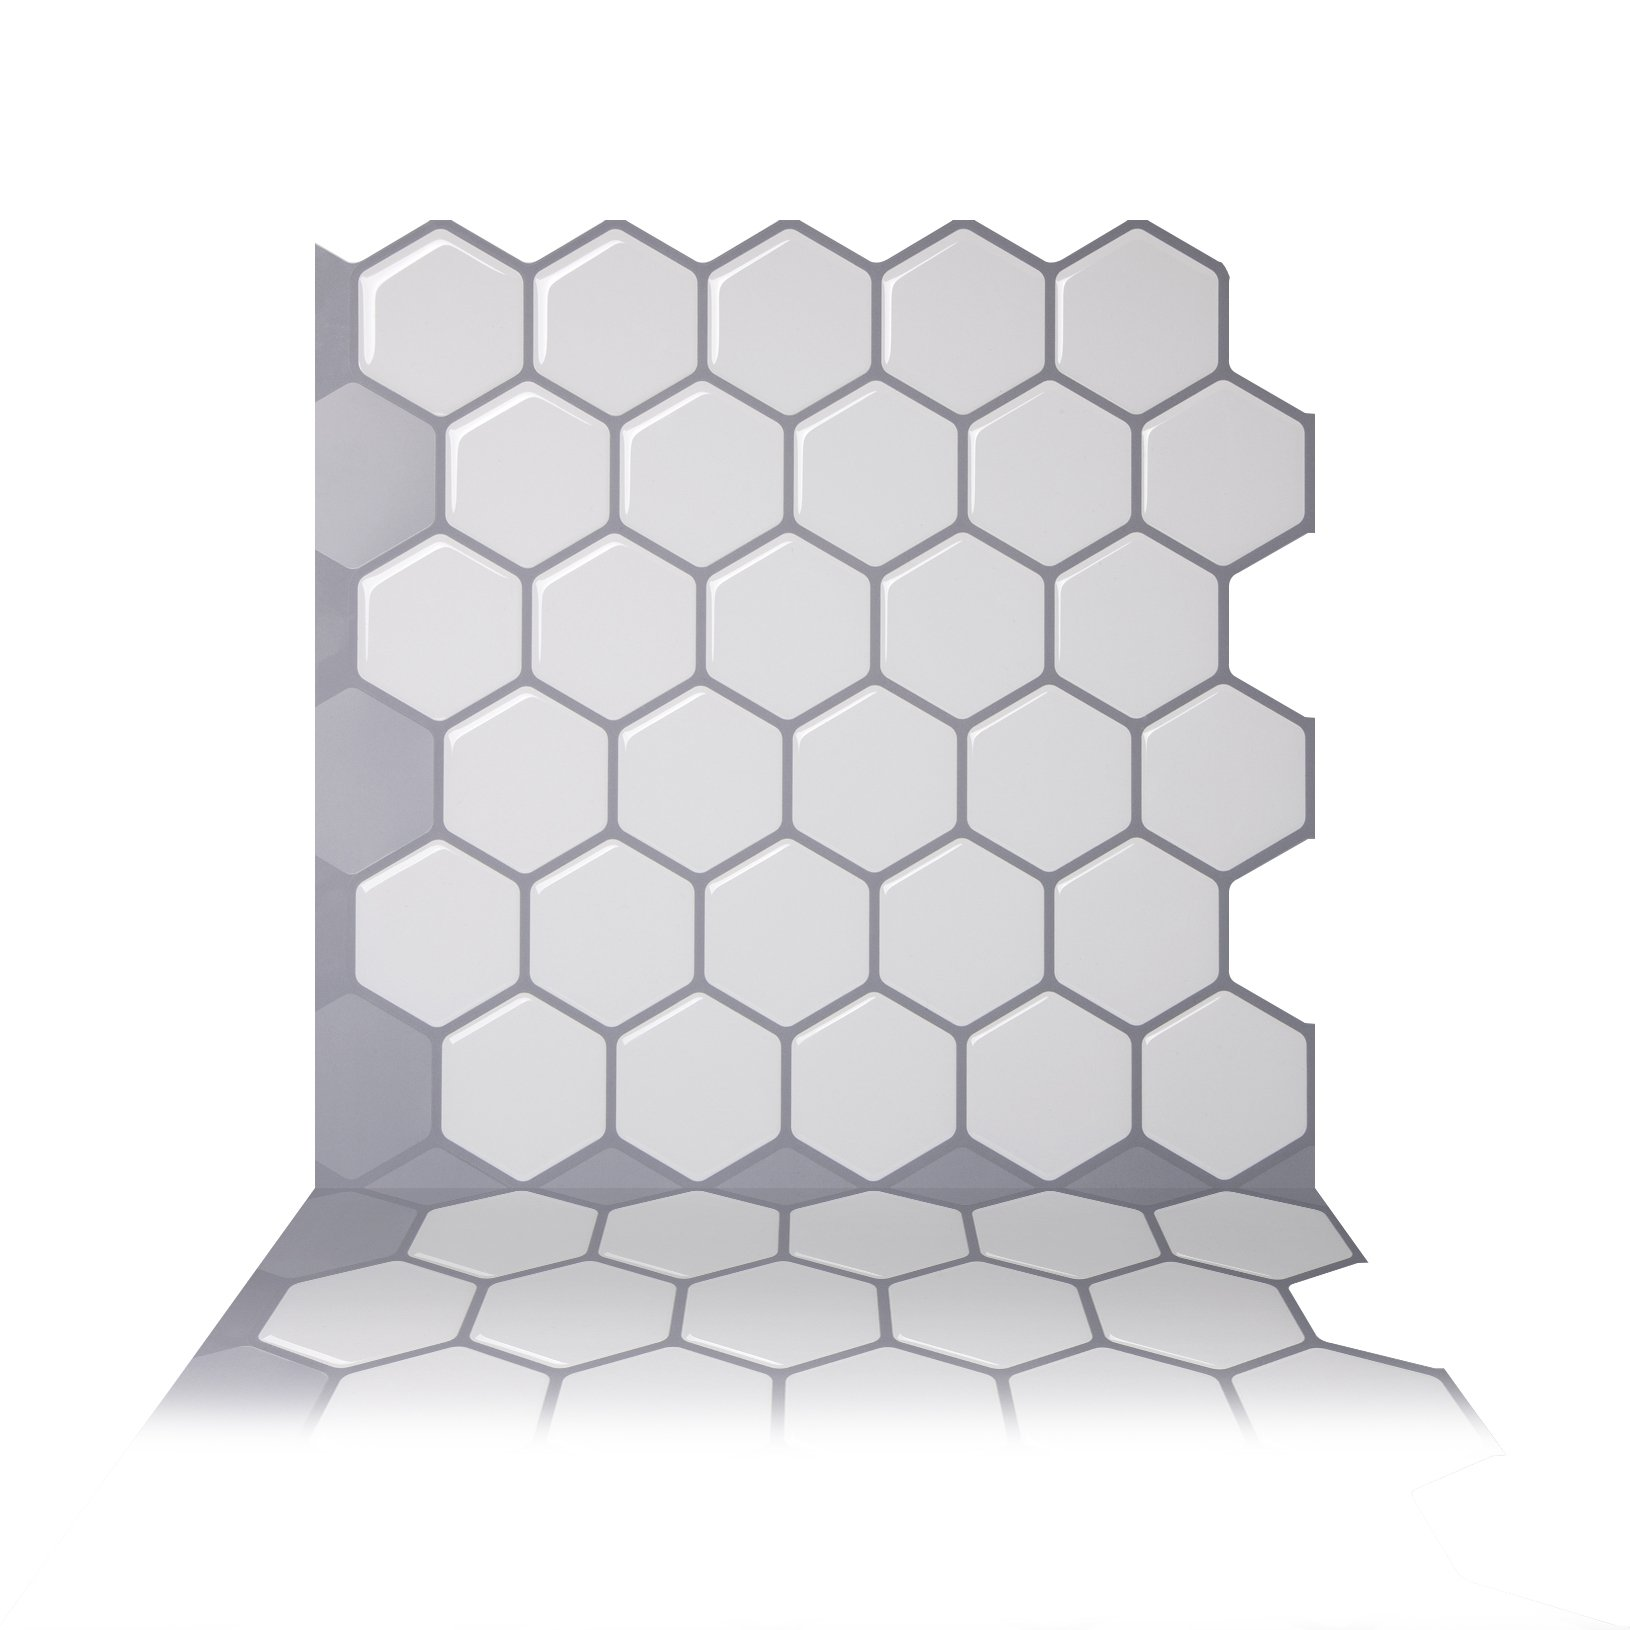 Tic Tac Tiles - Premium Anti-mold Peel and Stick Wall Tile in Hexa Mono White (10 tiles)